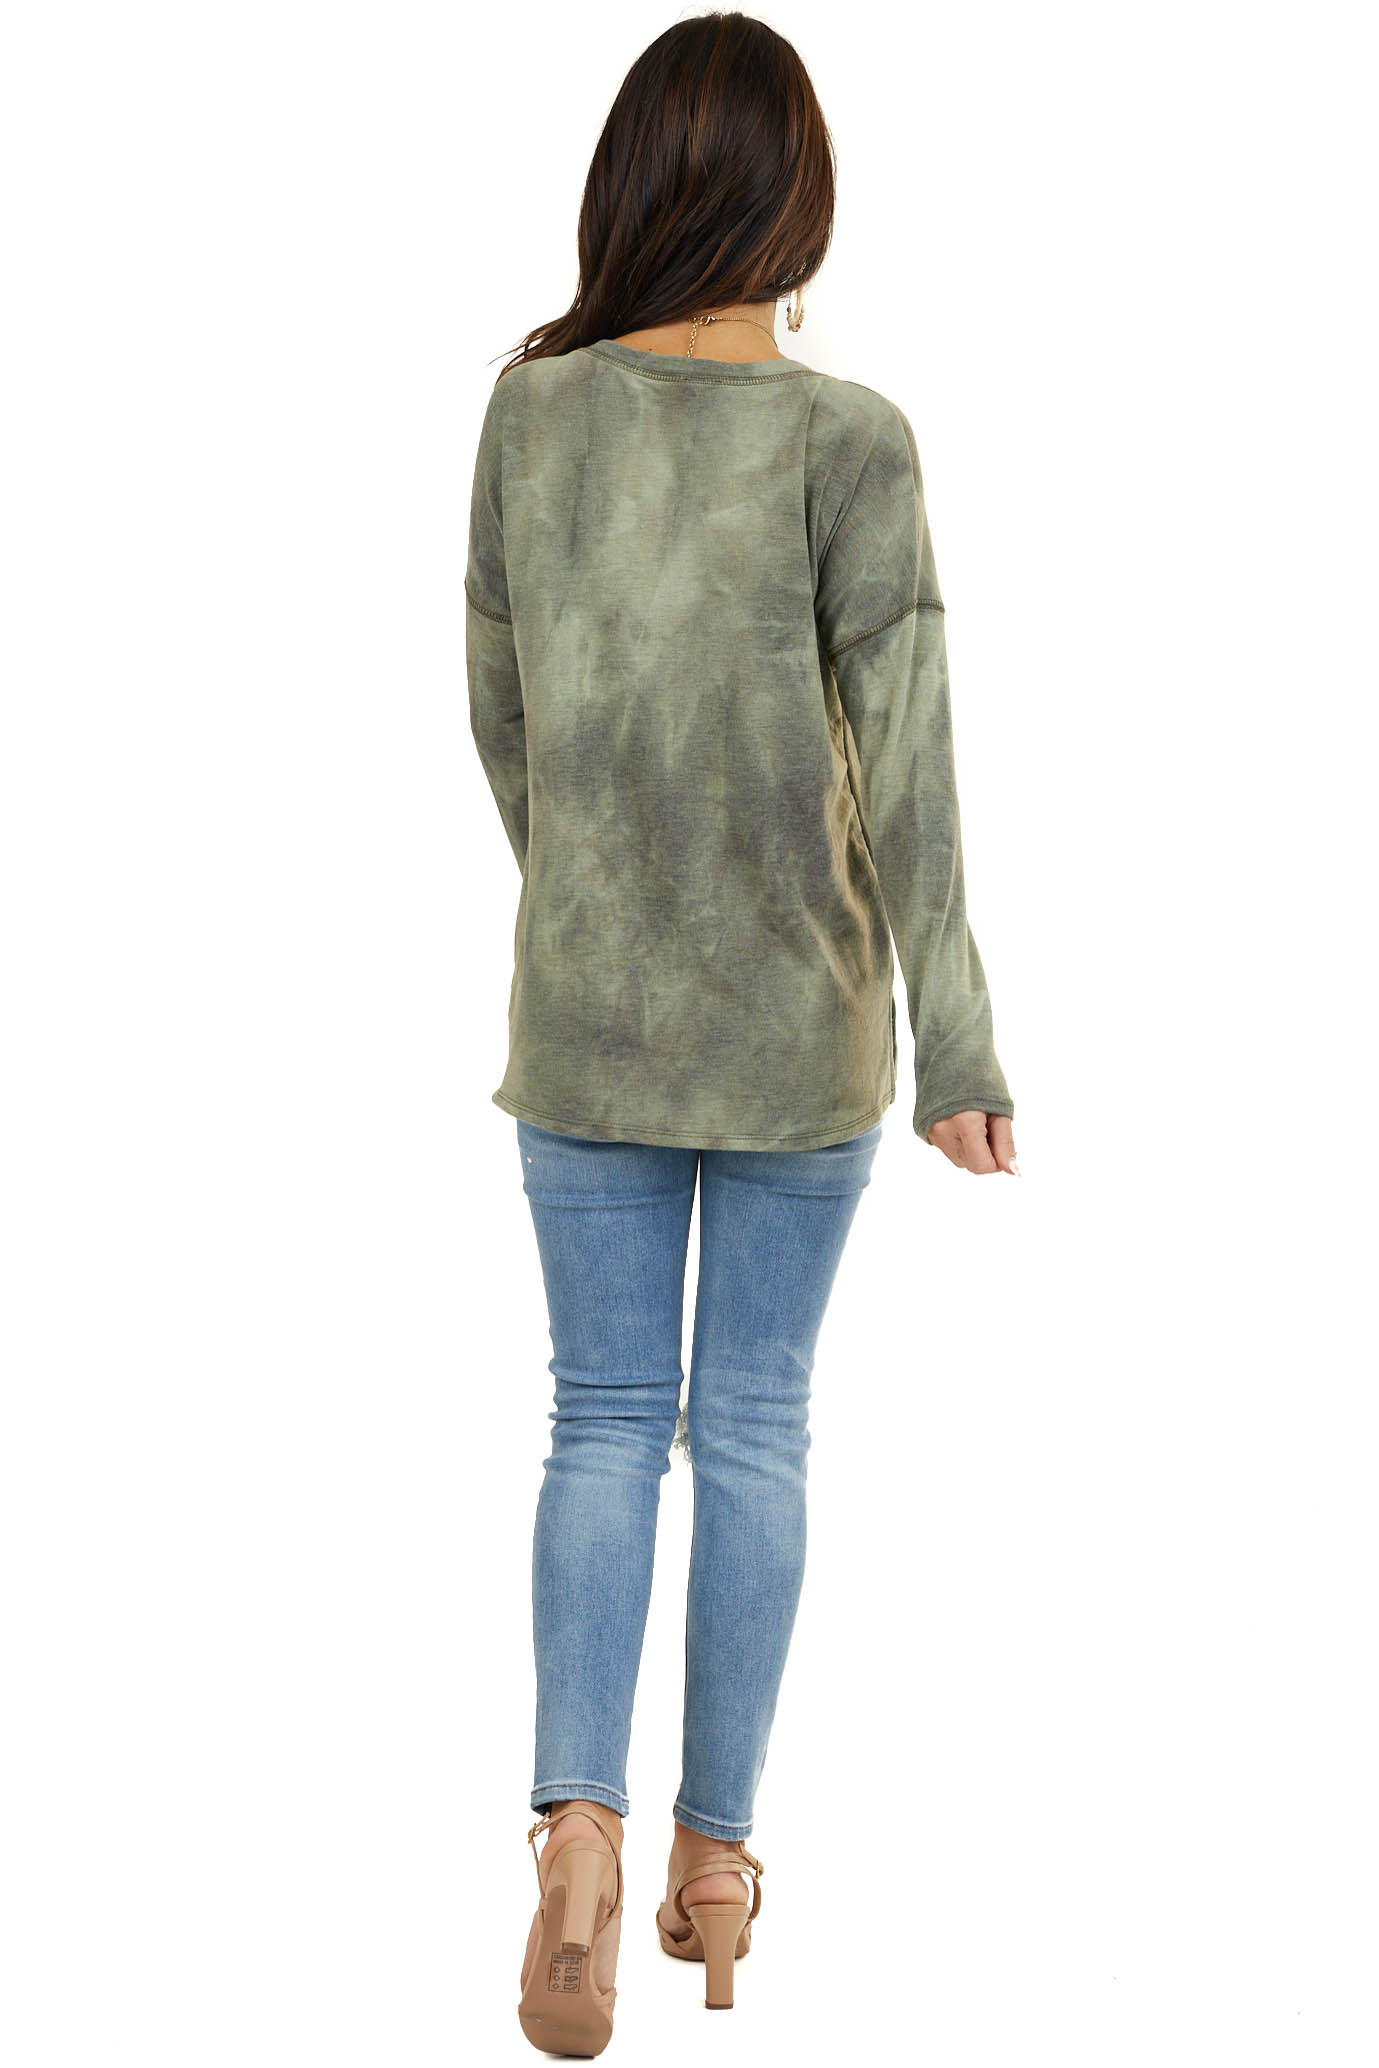 Dusty Olive Tie Dye Long Sleeve Top with Exposed Stitching